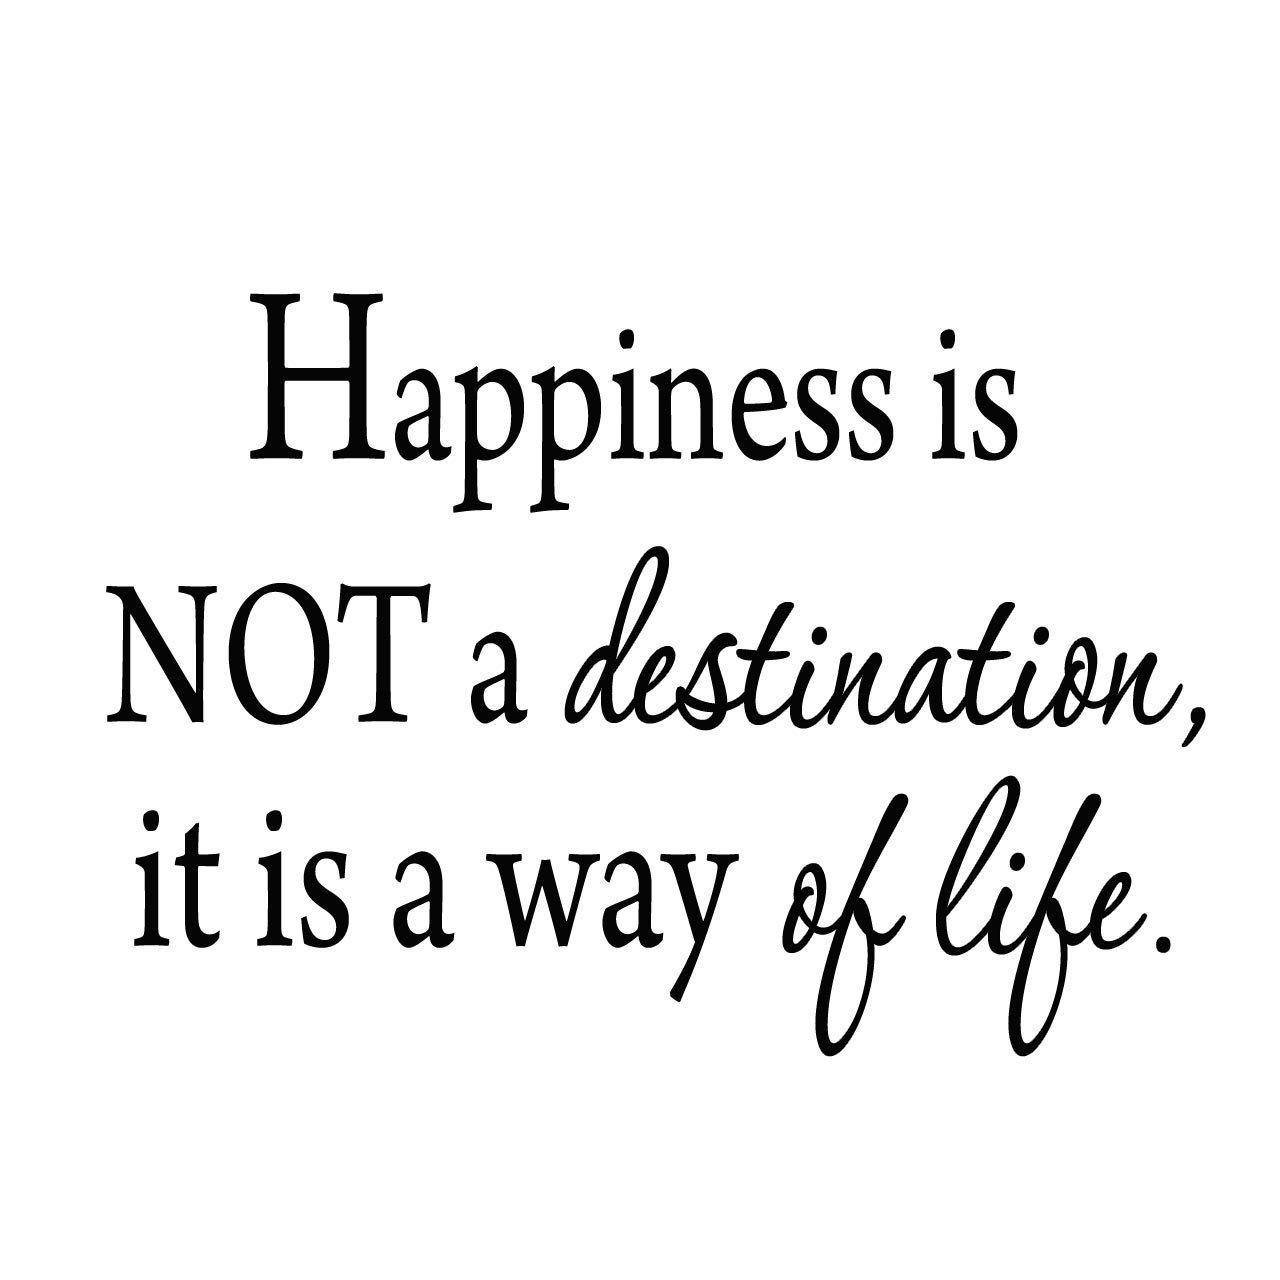 VWAQ Happiness Is Not a Destination, It Is a Way of Life